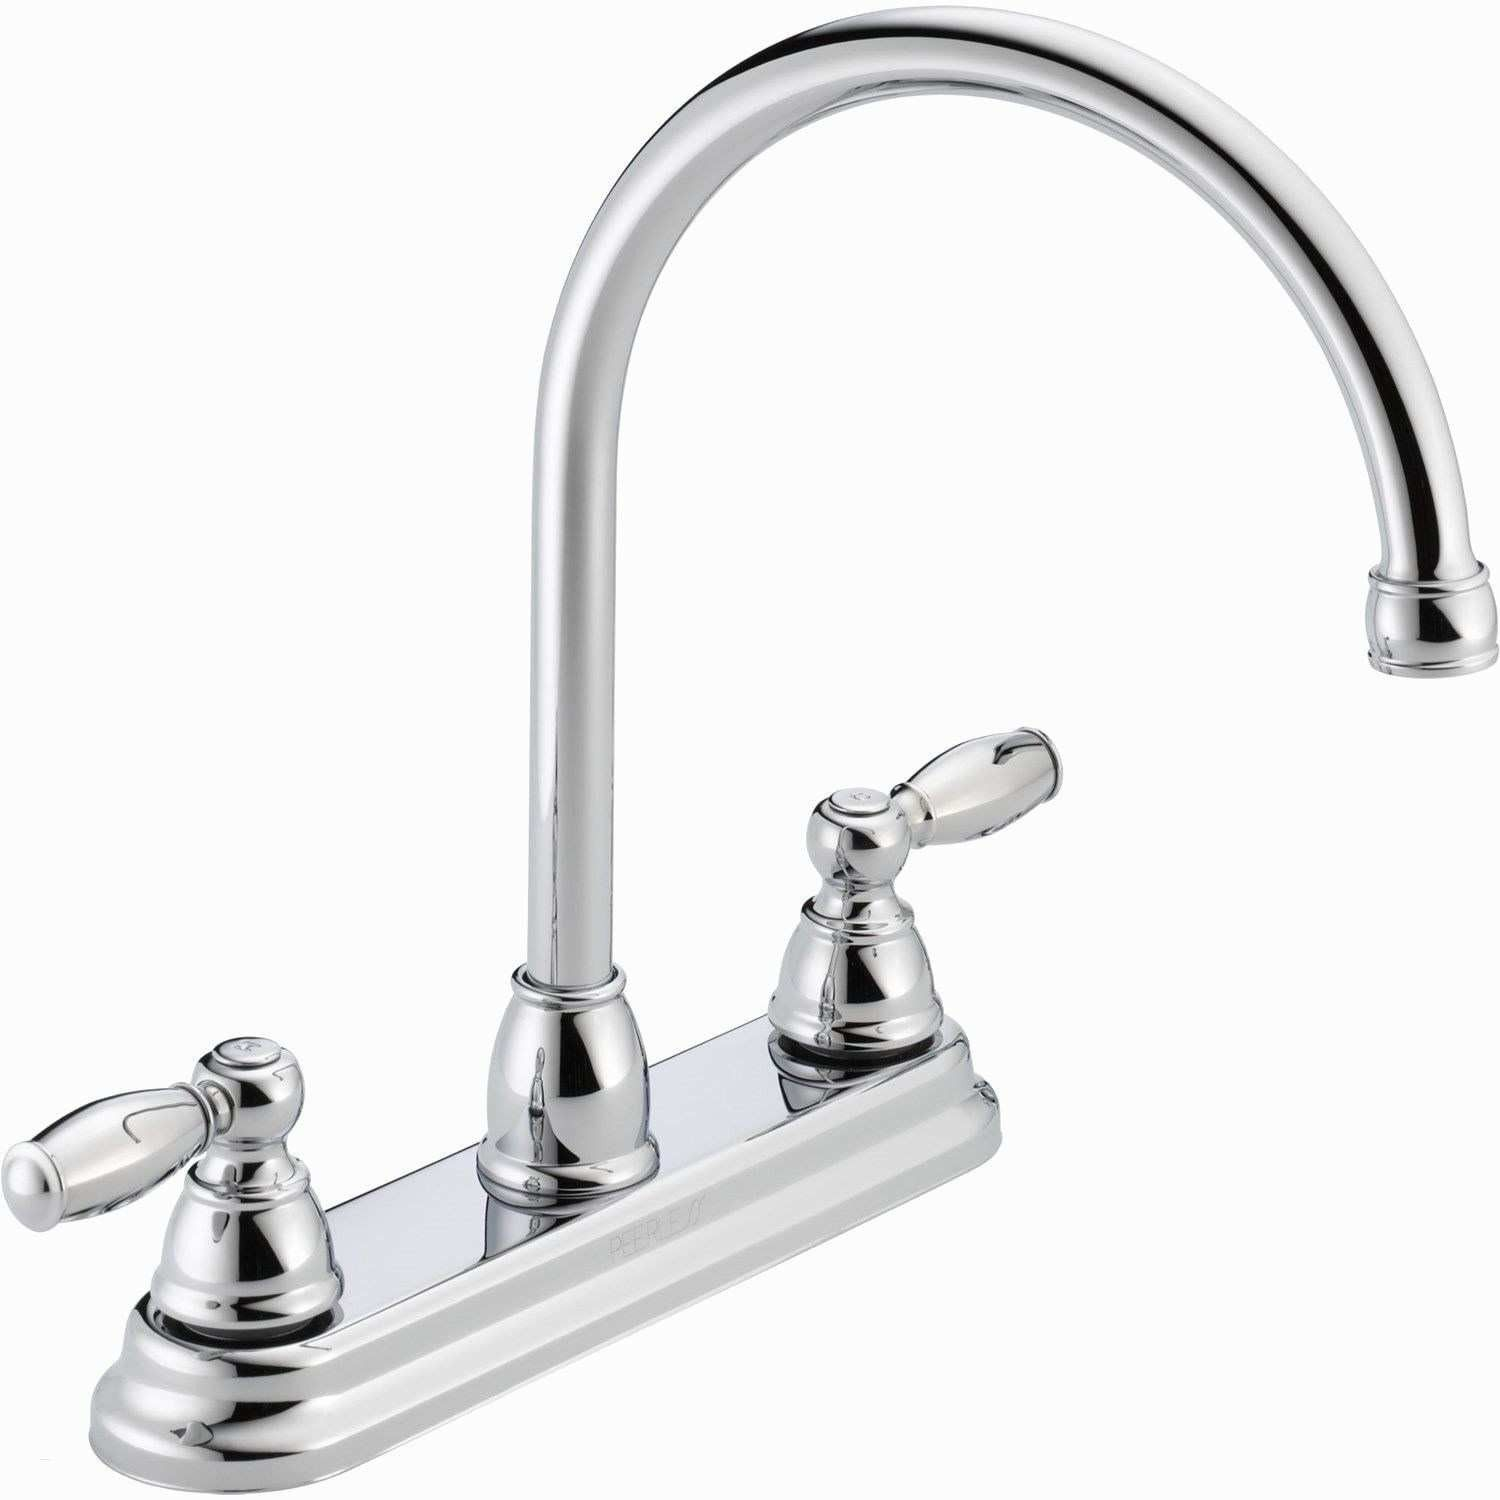 13 Delta Kitchen Faucet Cartridge, 25 Lovely Delta Bathroom ...